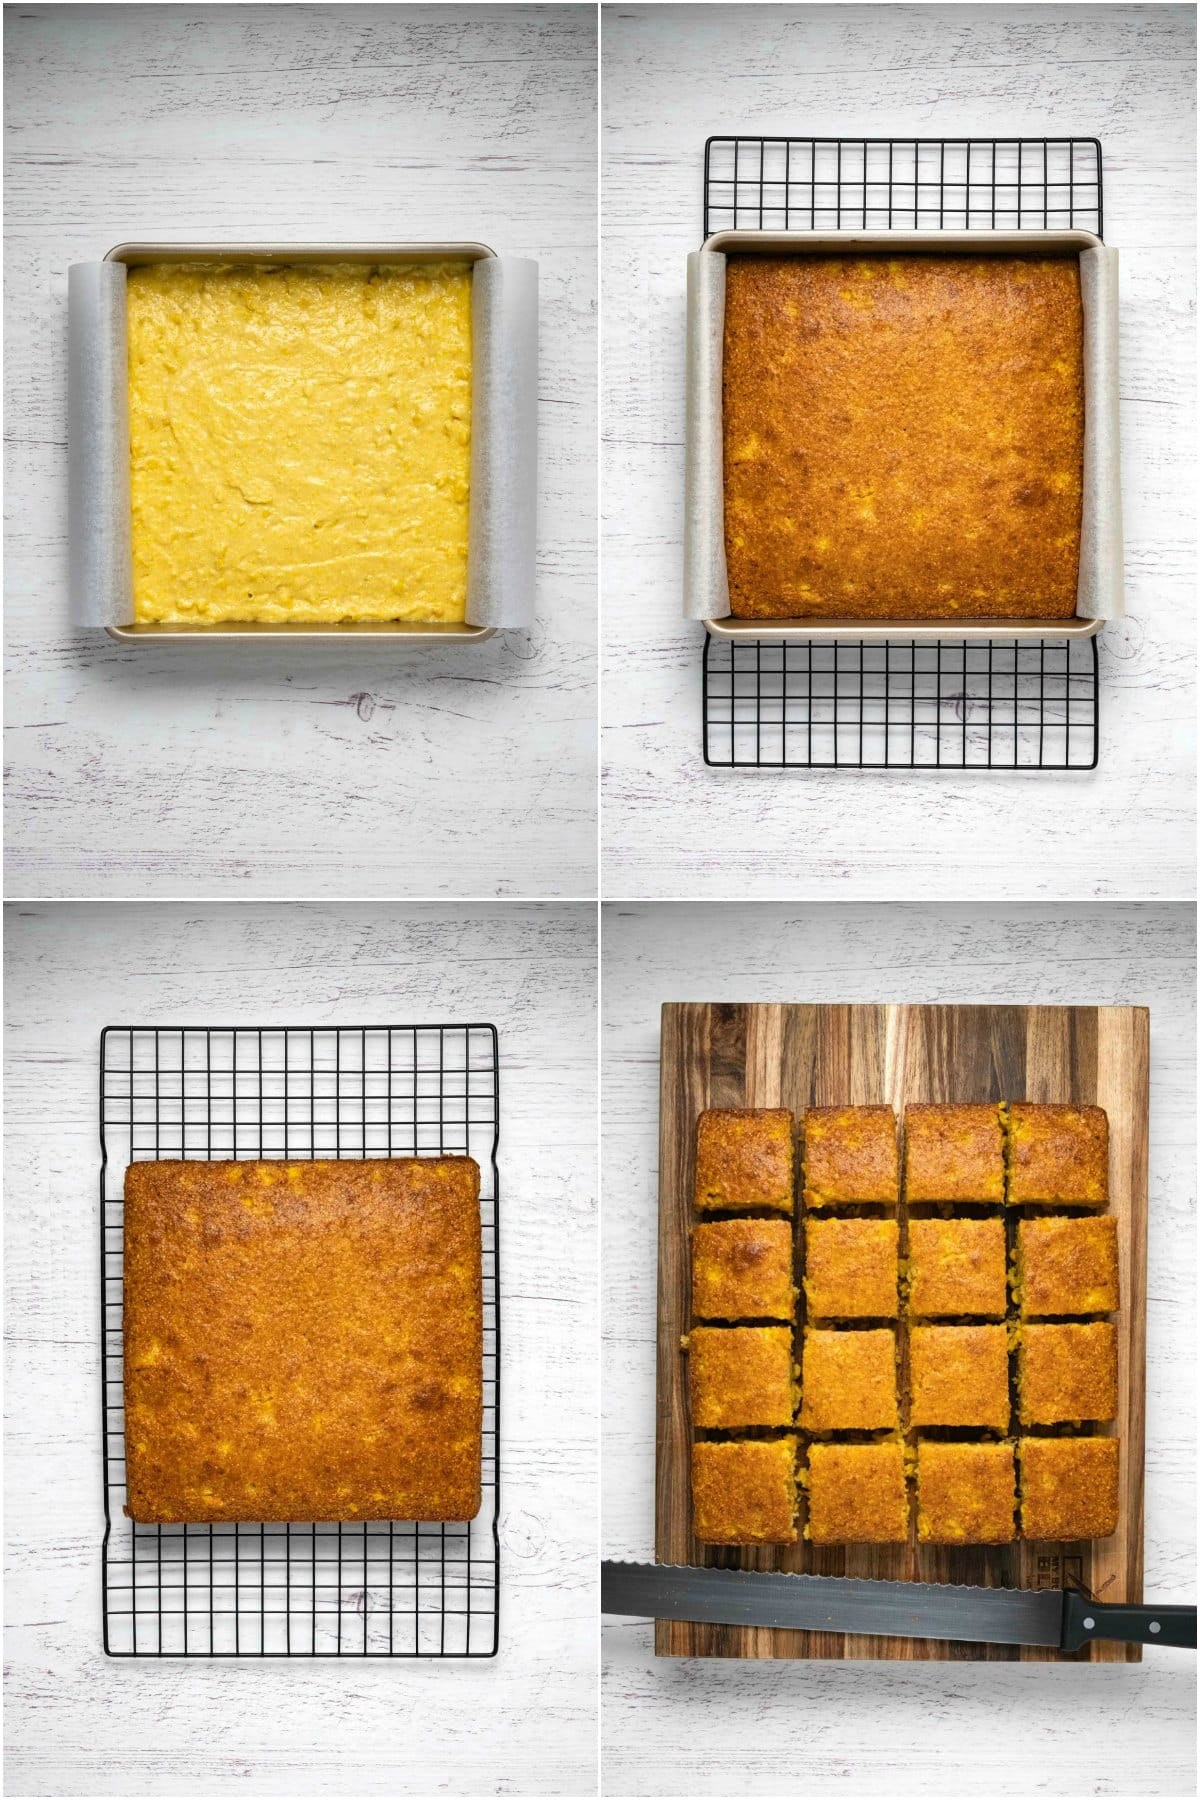 Step by step process photo collage of making cornbread.